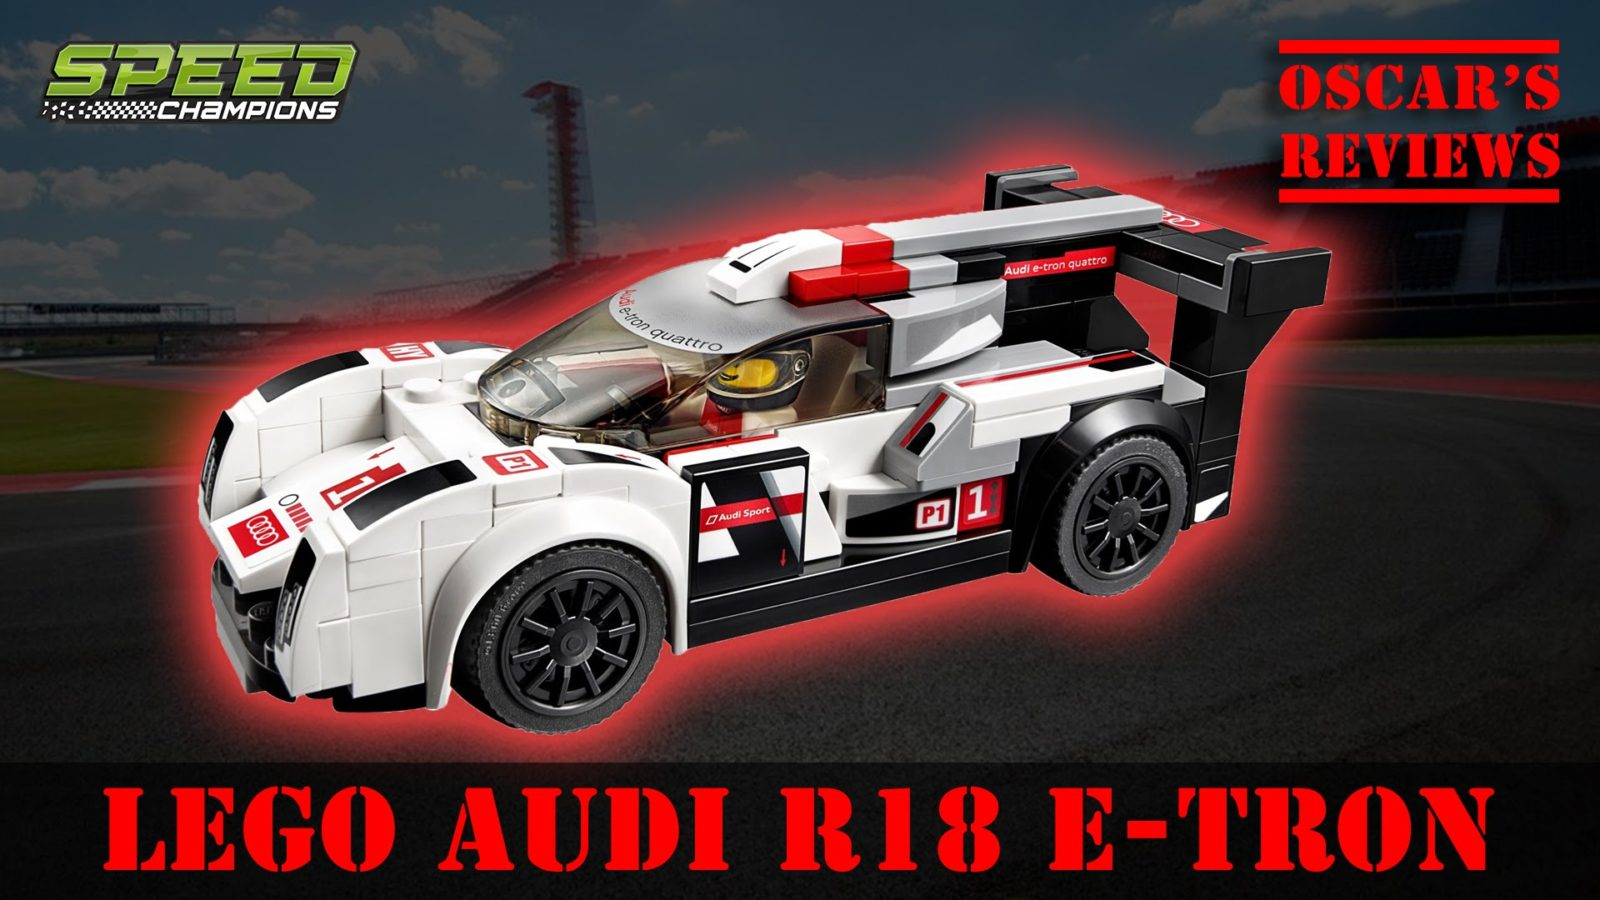 Lego Speed Champions – Audi R18 e-tron quattro (75872) – A Kid's Review